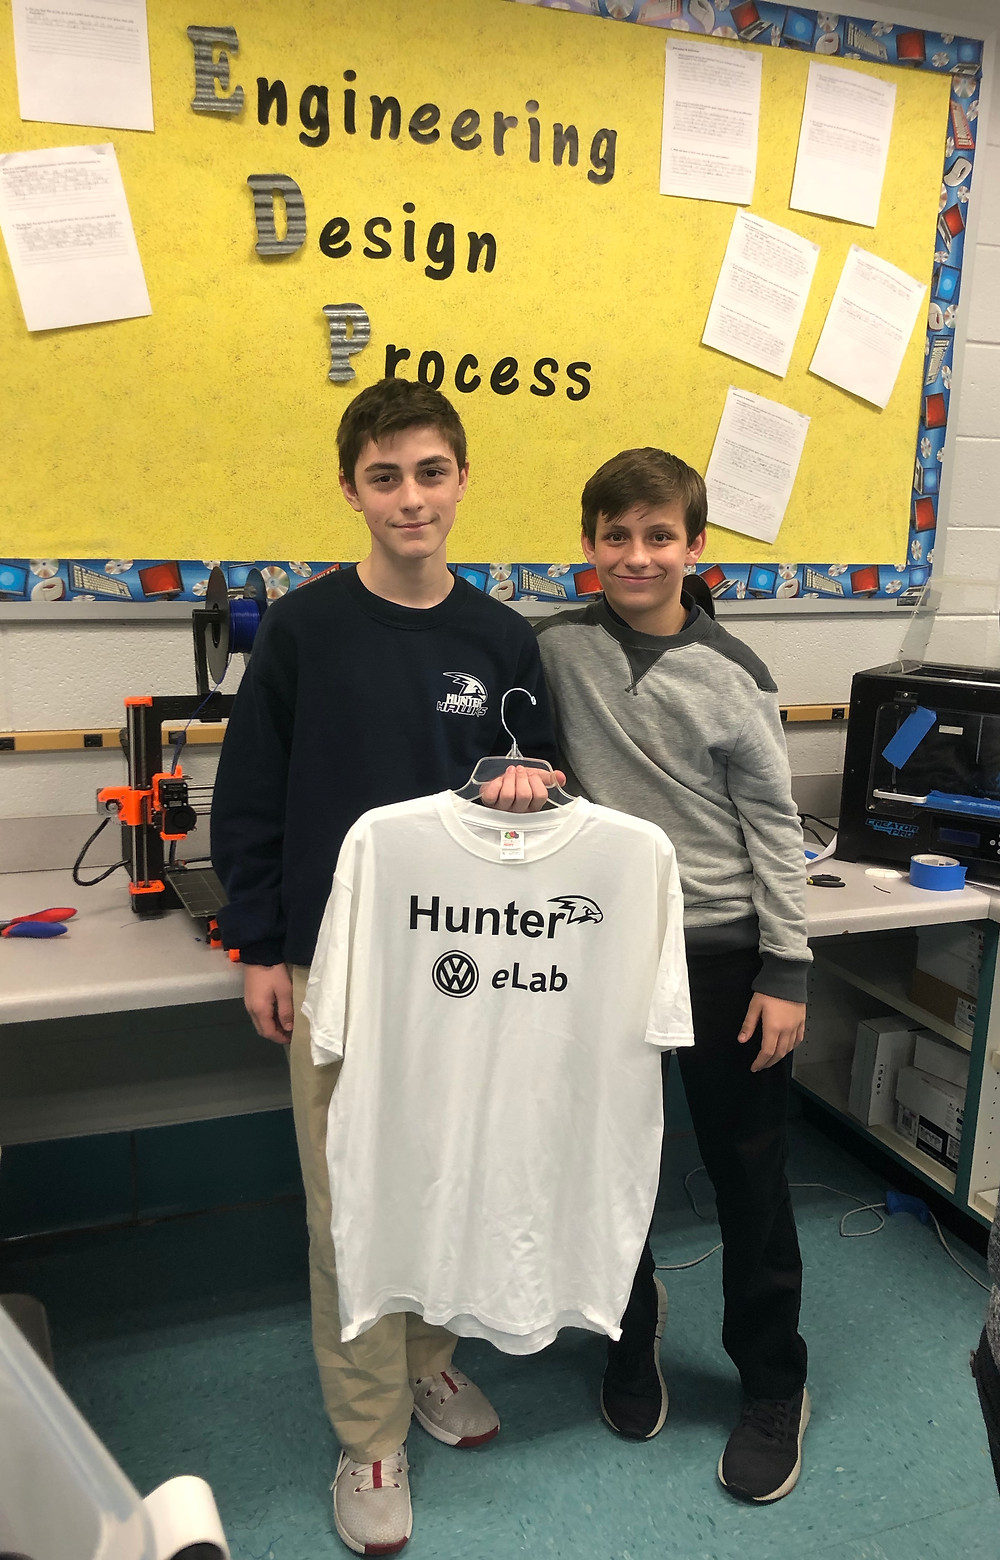 Class partners Mosier & Hook hold up one of the shirts created in the VW eLab.